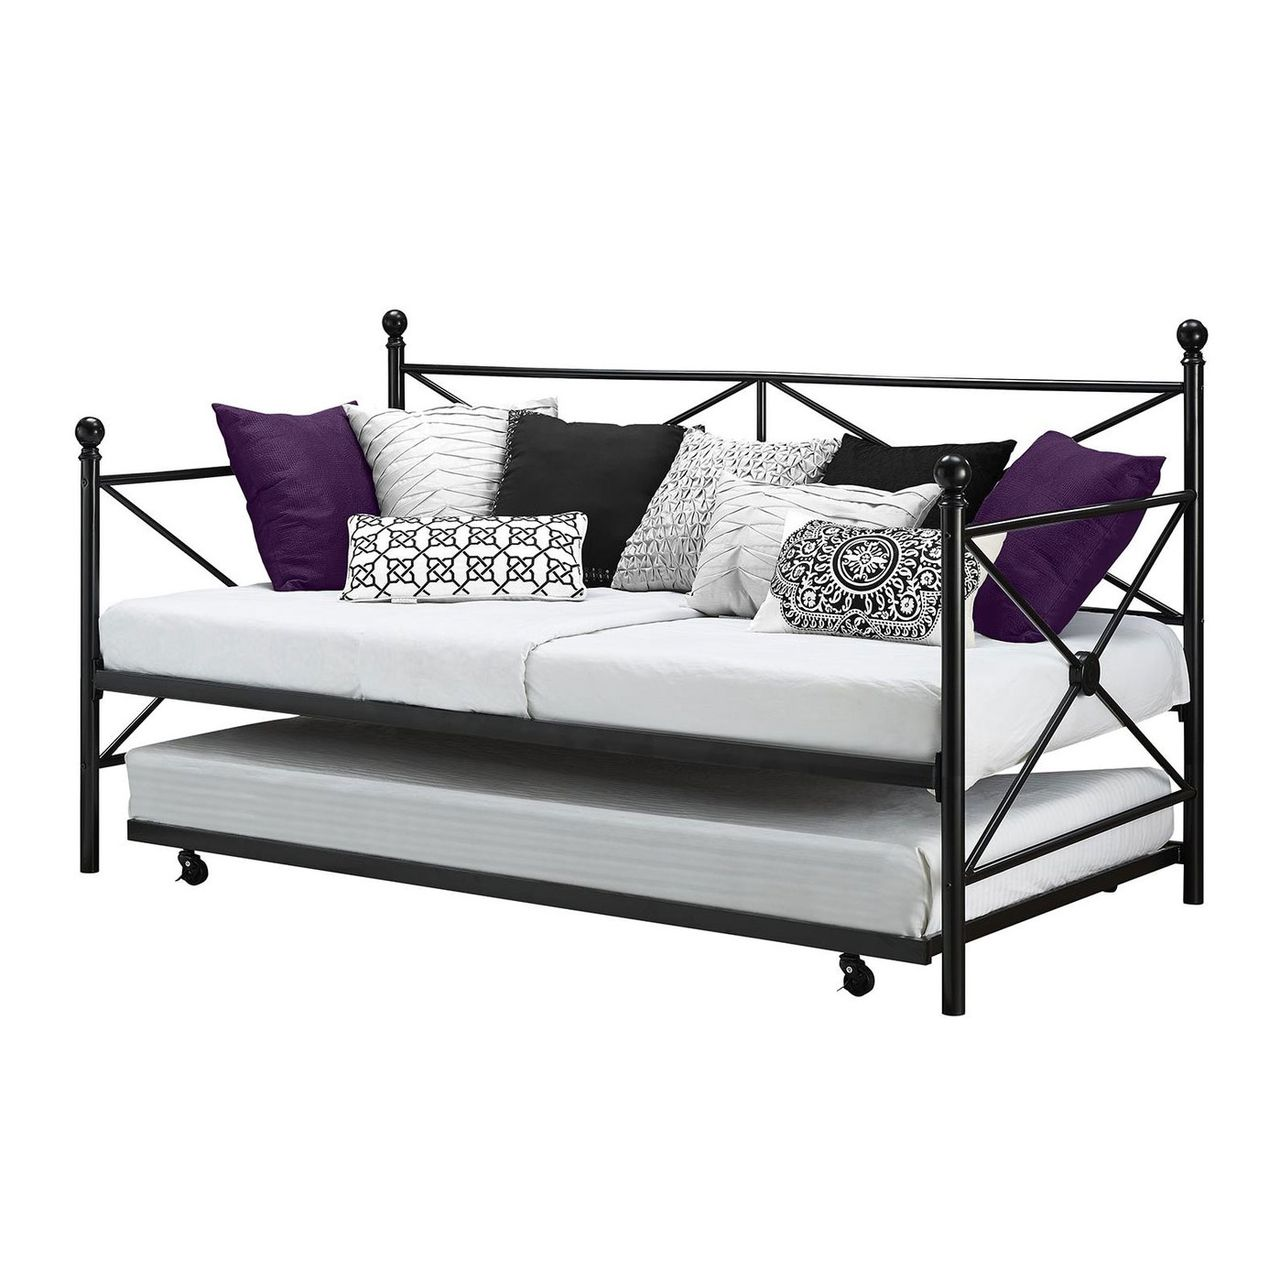 Twin Black Metal Day Bed Frame and Roll out Trundle Set